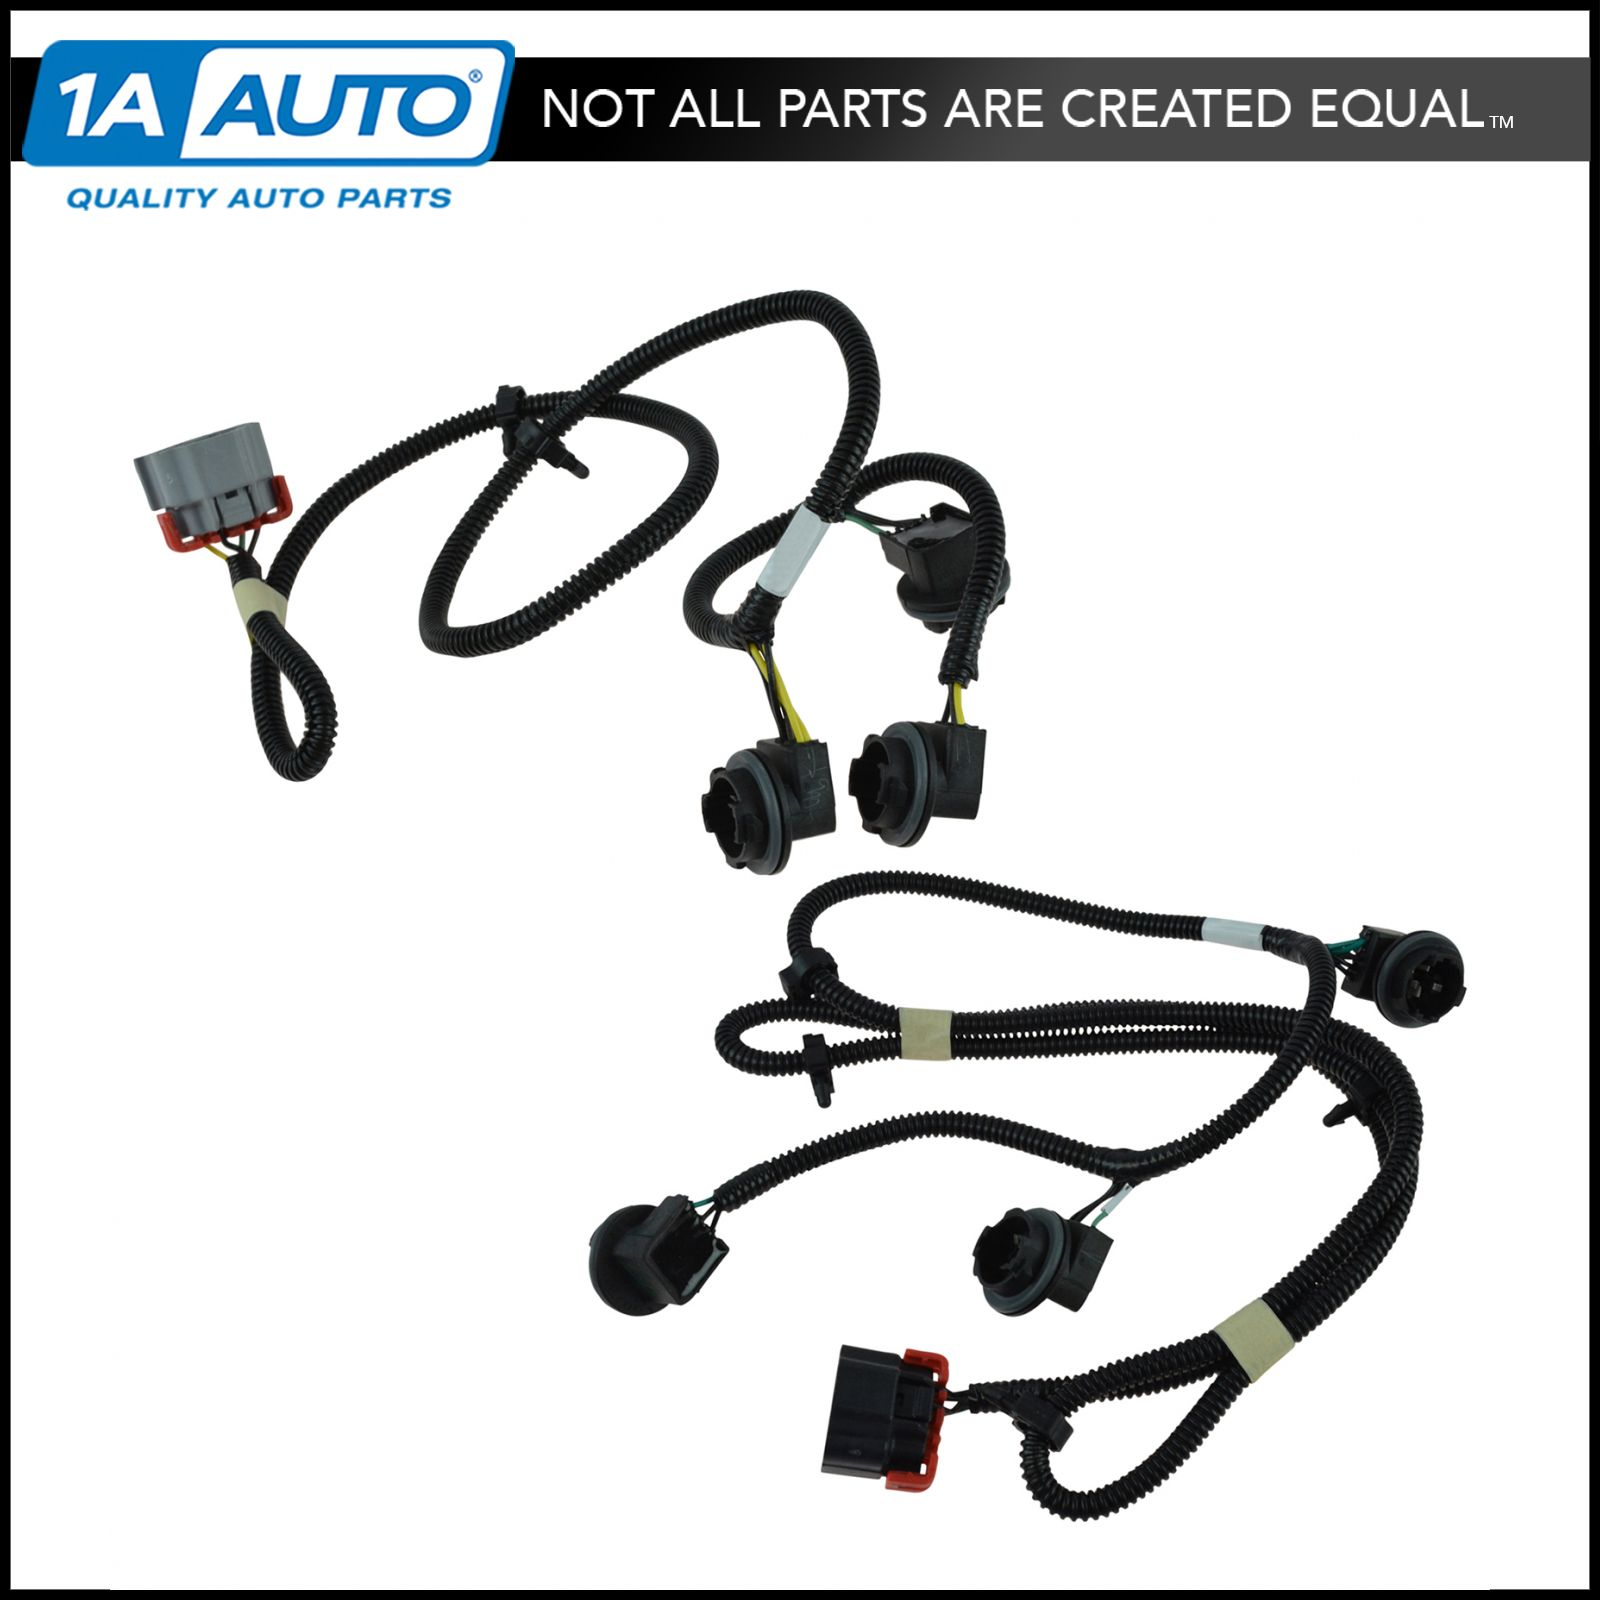 hight resolution of details about oem tail light lamp wiring harness pair lh rh sides for chevy gmc pickup truck